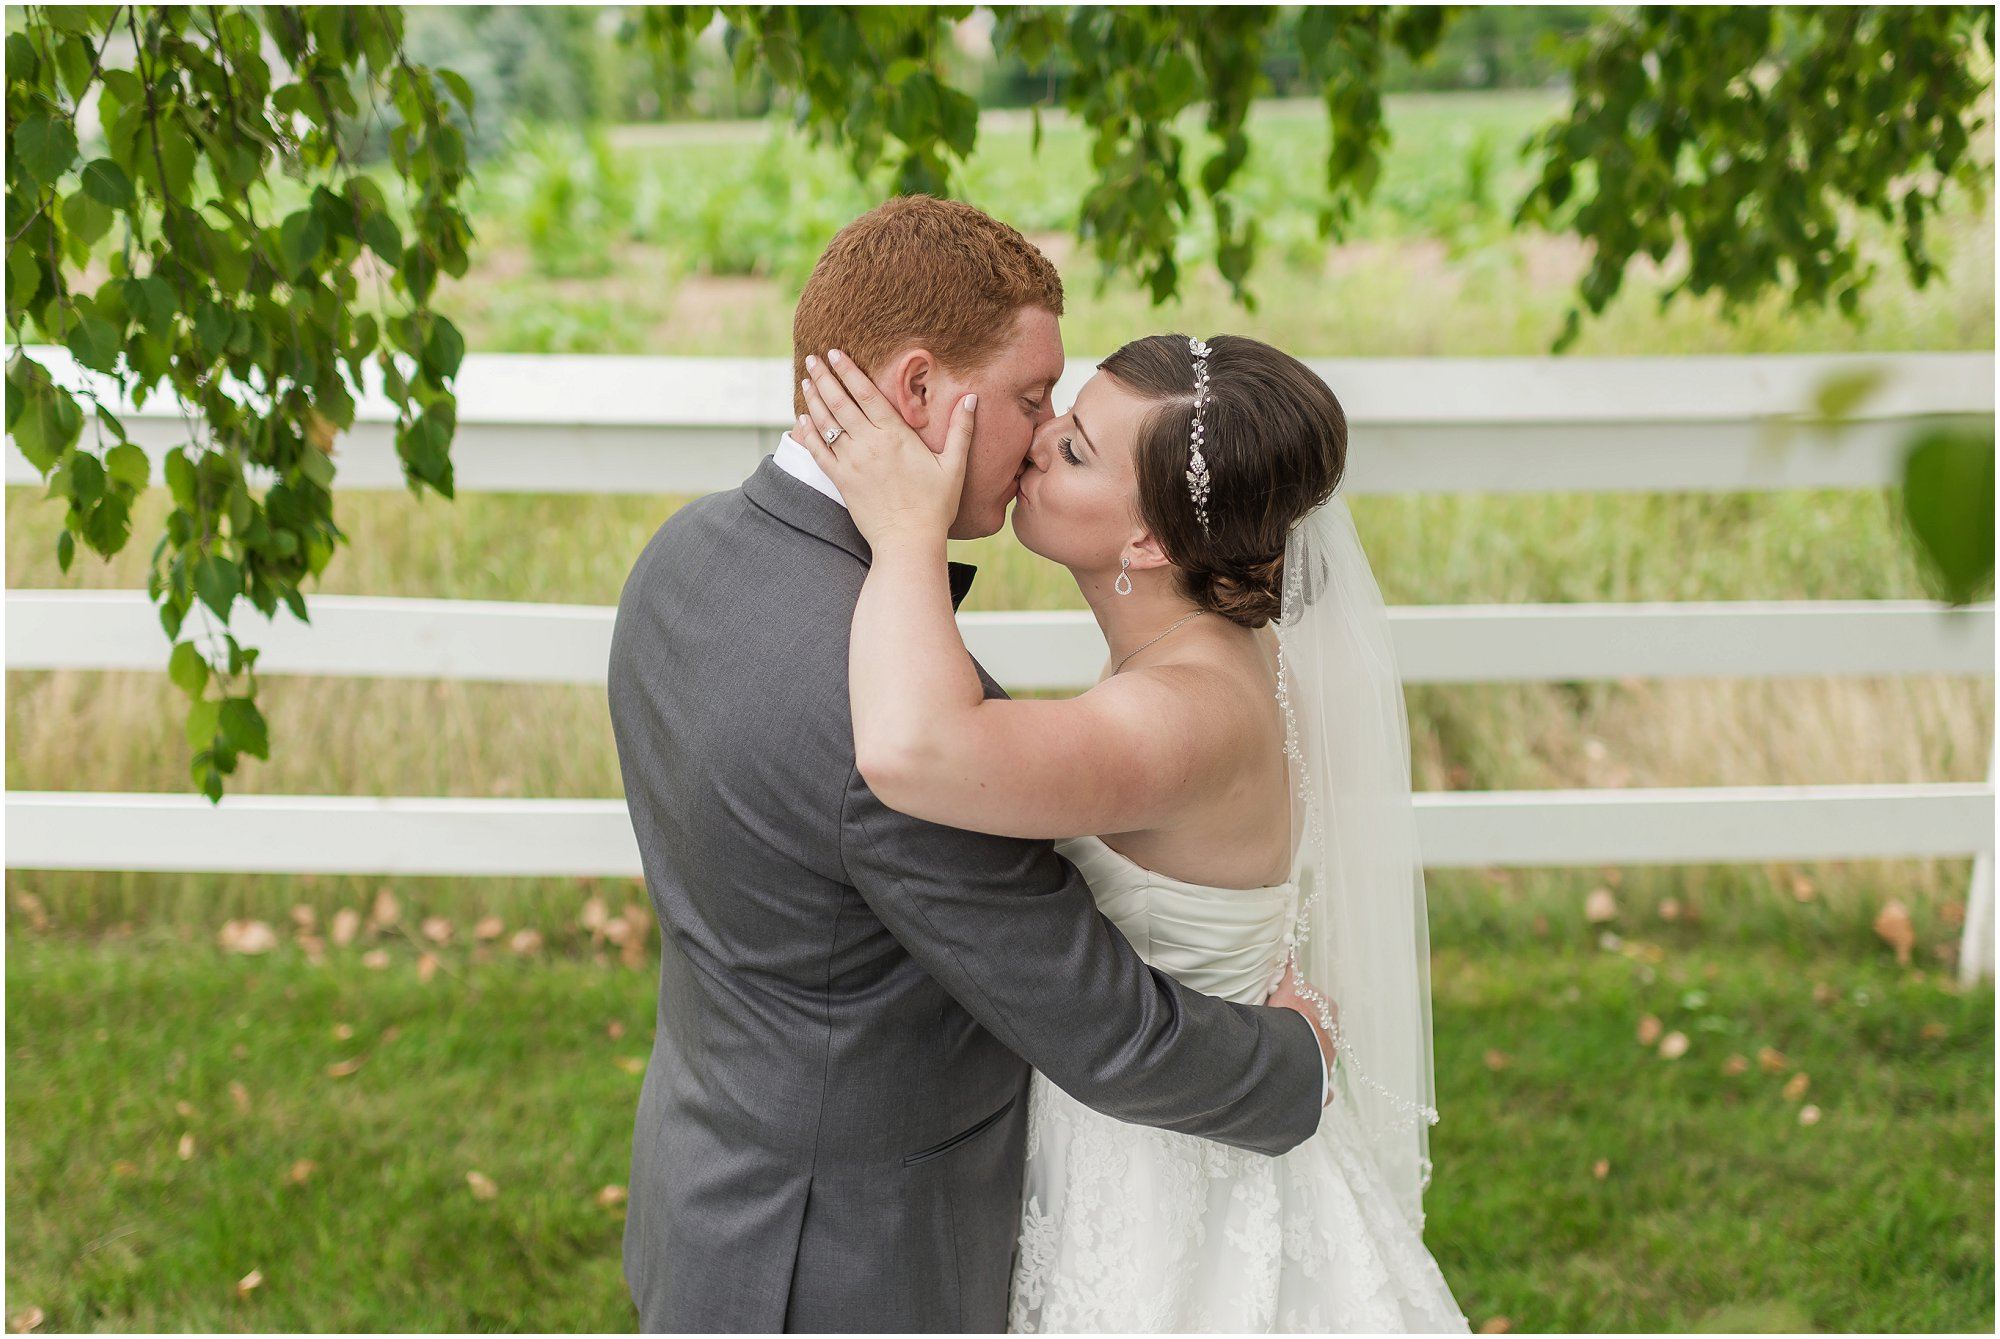 cornman-farms-wedding-michigan-barn-wedding_0996.jpg